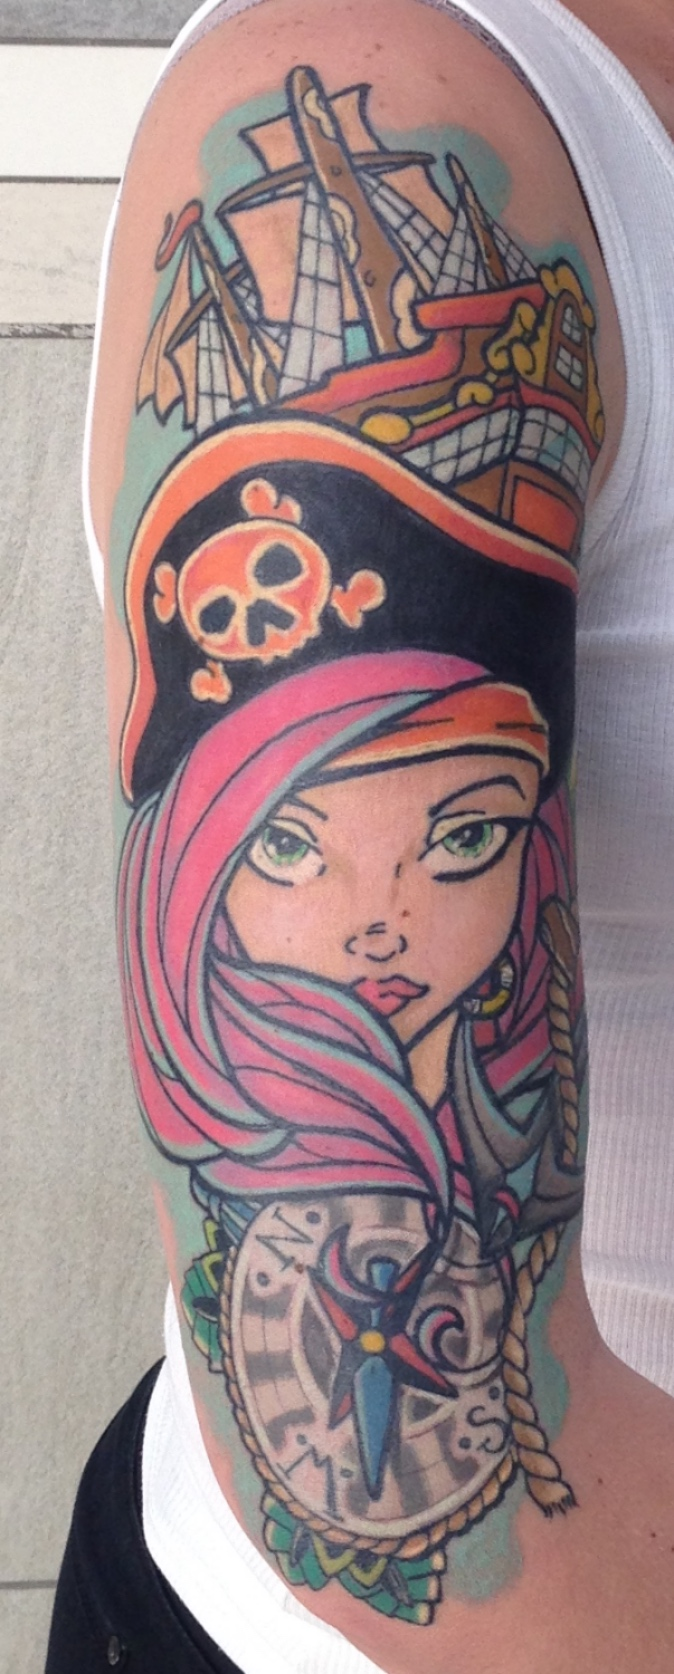 A new school tattoo creation by Alastair Magee